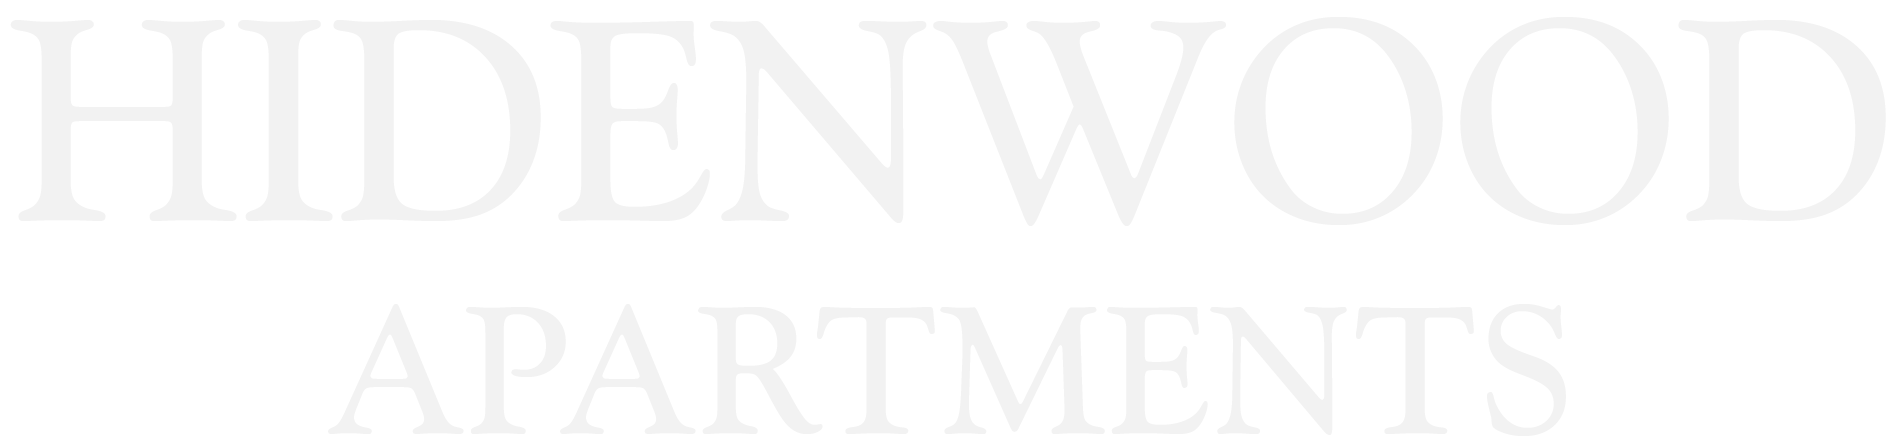 Hidenwood Apartments Logo